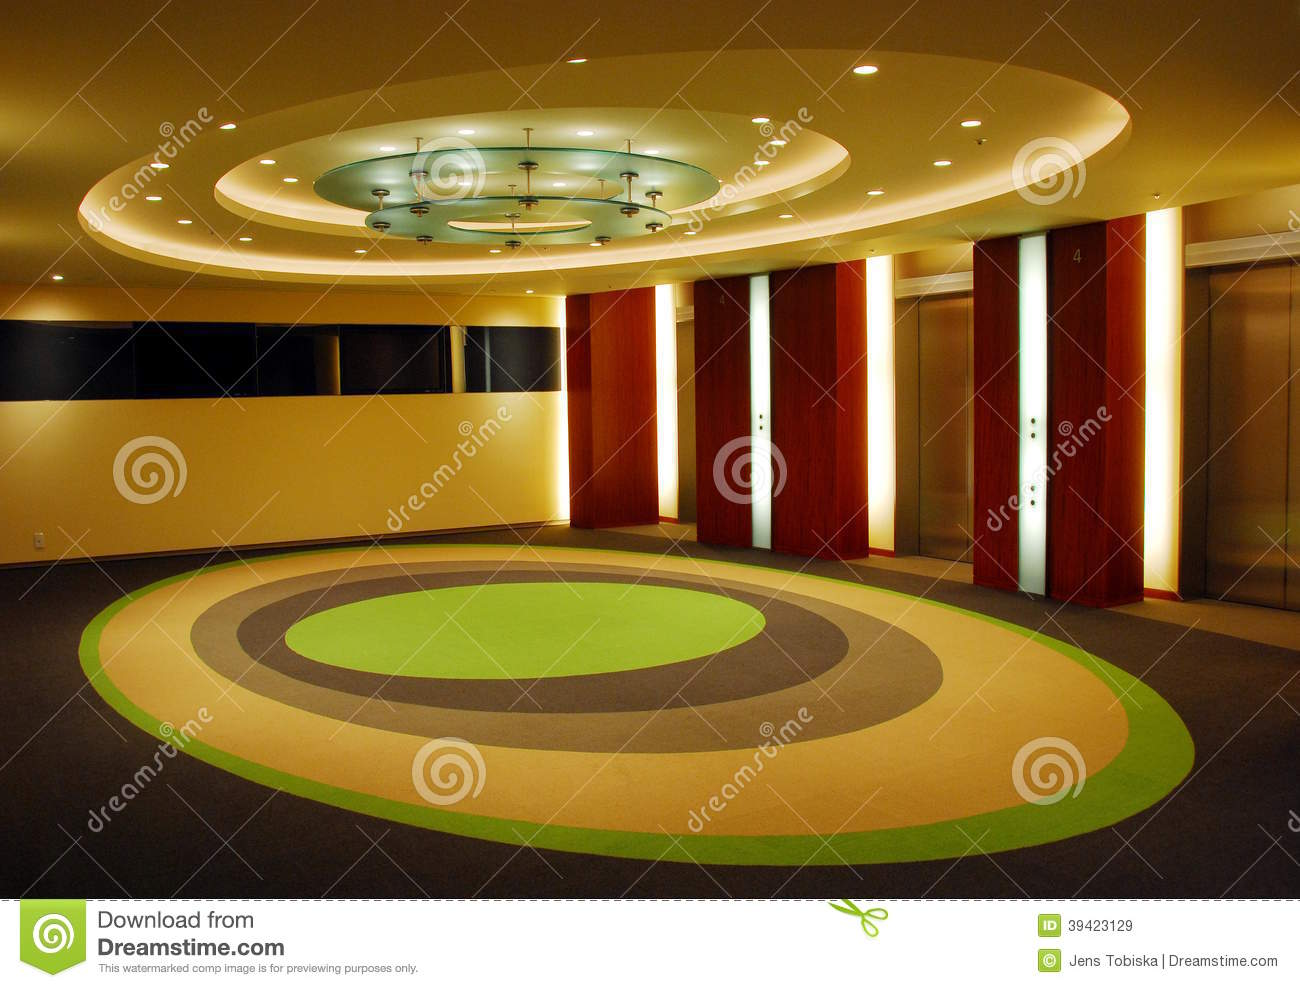 Corridor Design Ceiling: Modern Corridor With Egg-shaped Design Of Ceiling And